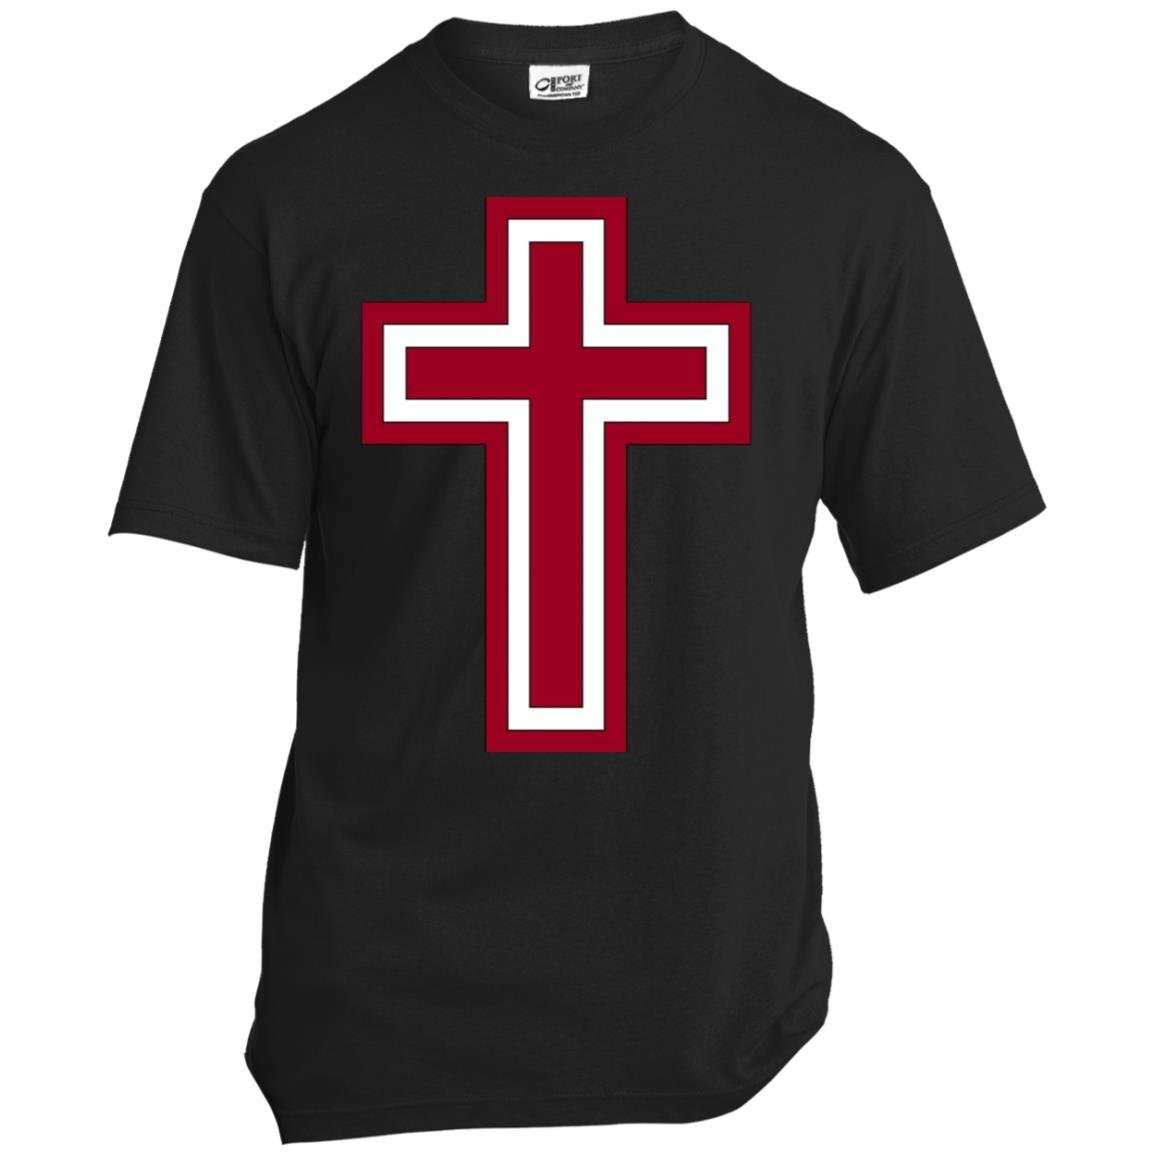 Red and White Cross T Shirt (6 Variants)